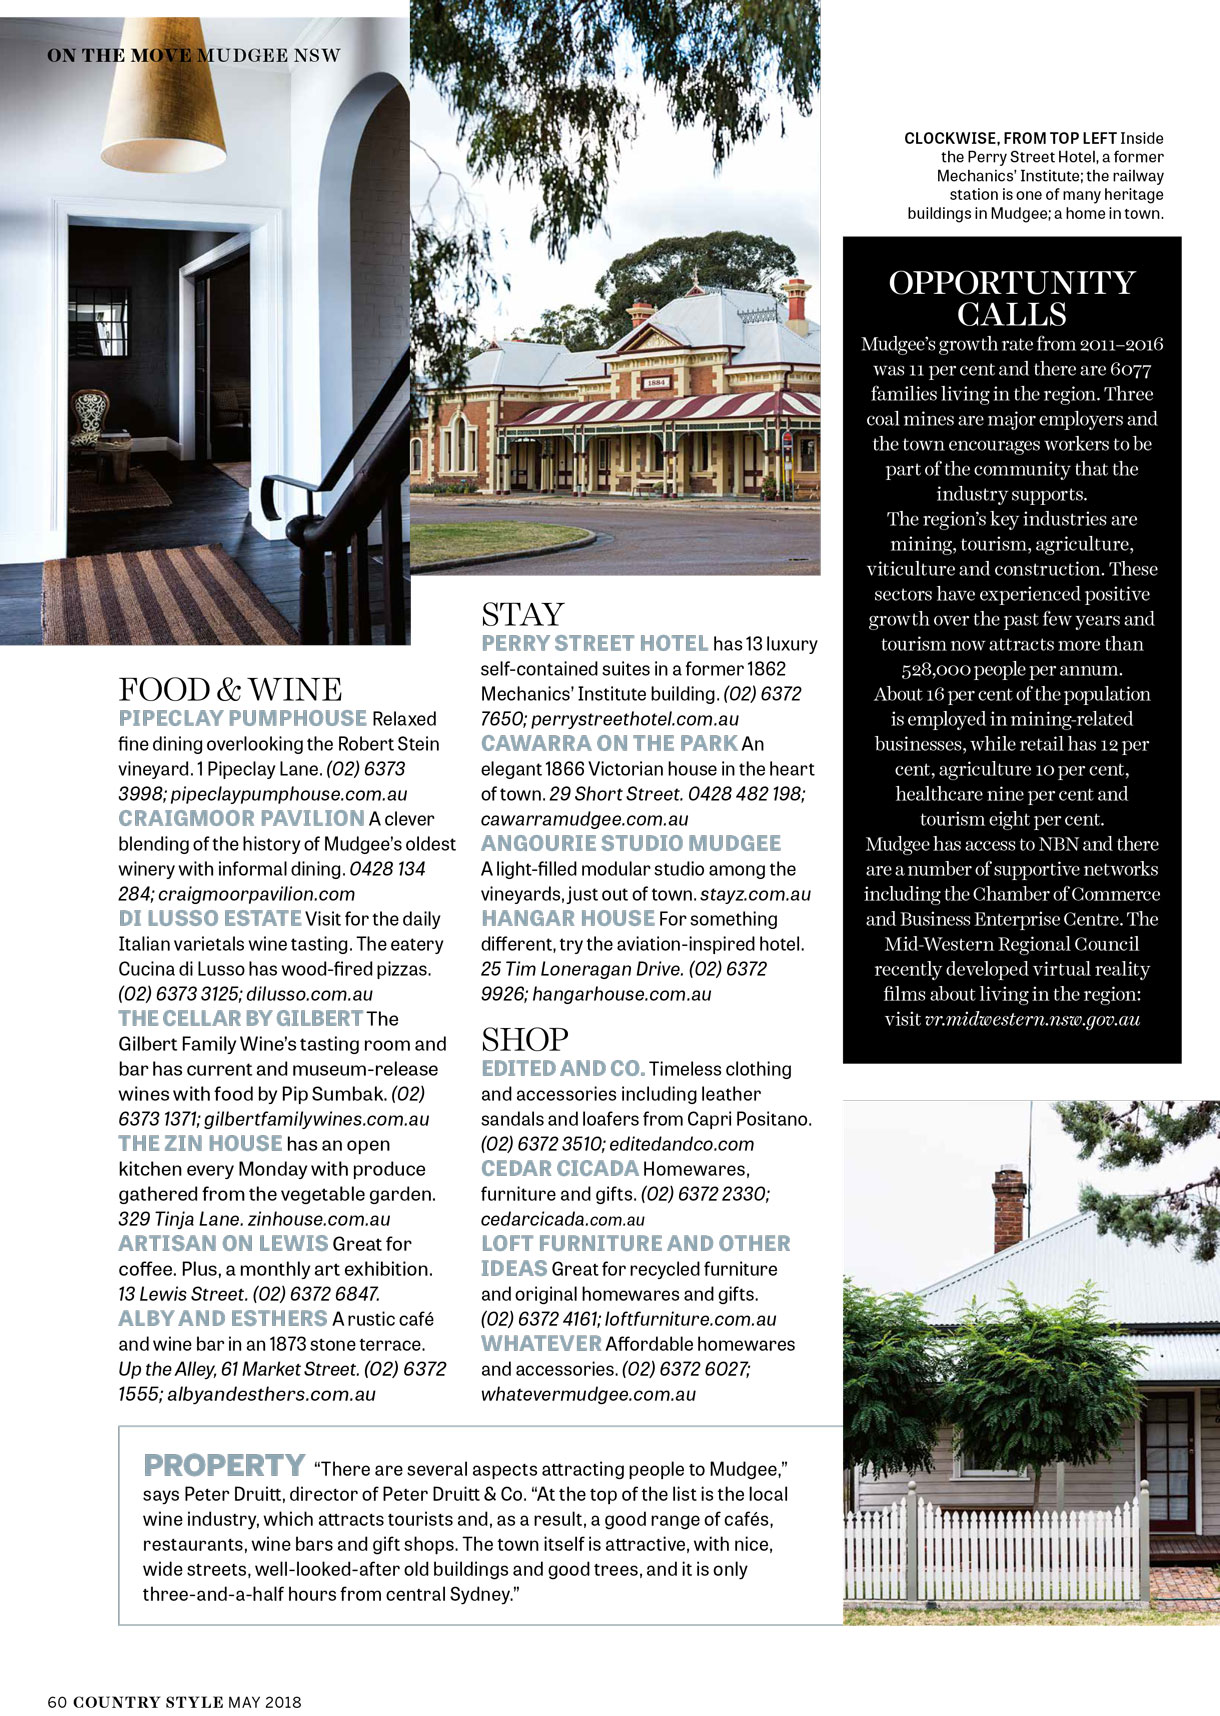 Australian+Country+Style+MAY+2018+Mudgee+On+the+Move+by+Claire+Mactaggart+3